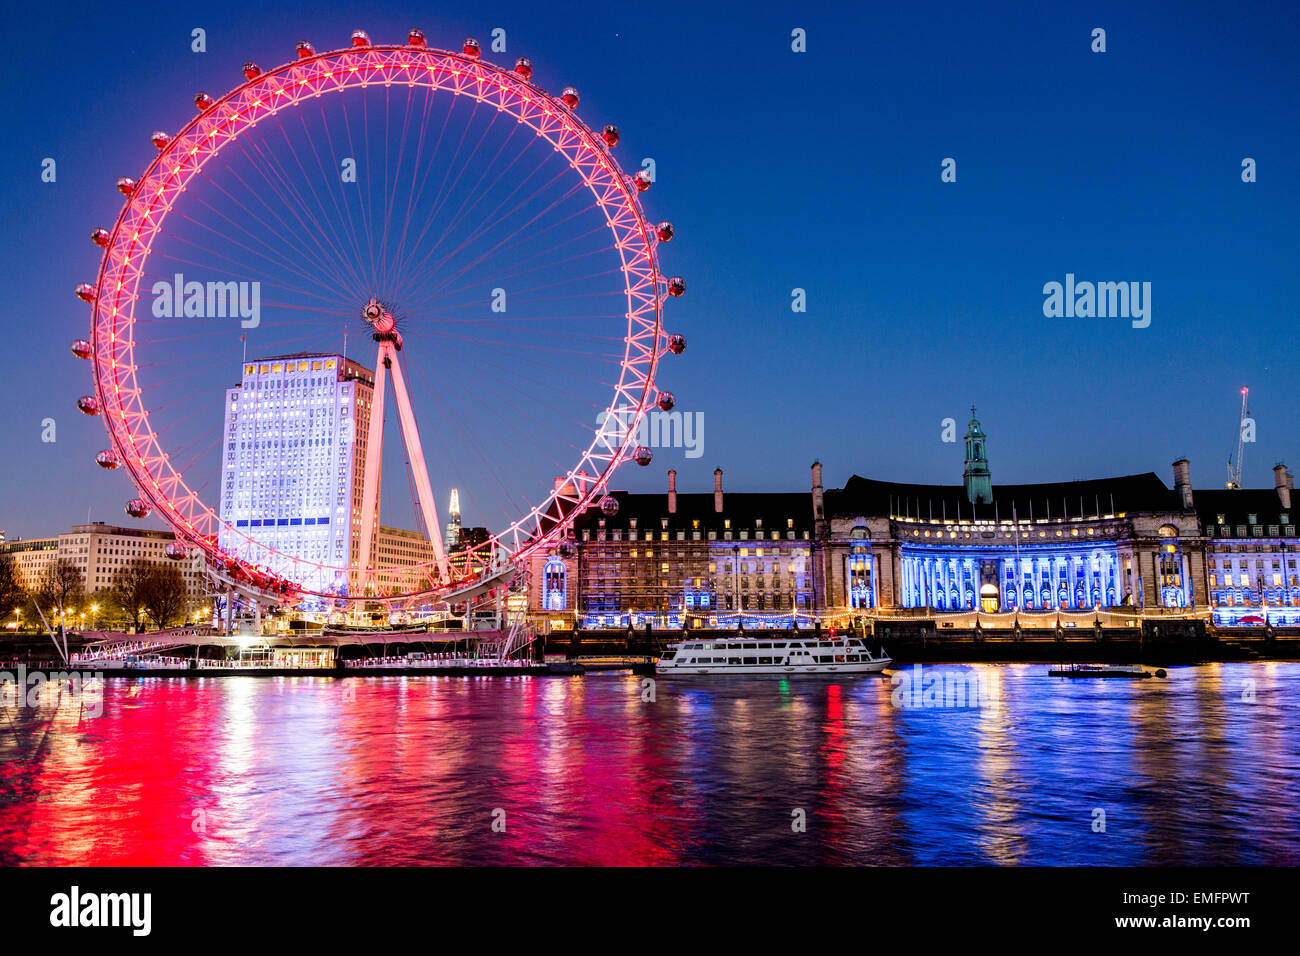 The London Eye and River Thames with Trees At Night London UK - Stock Image